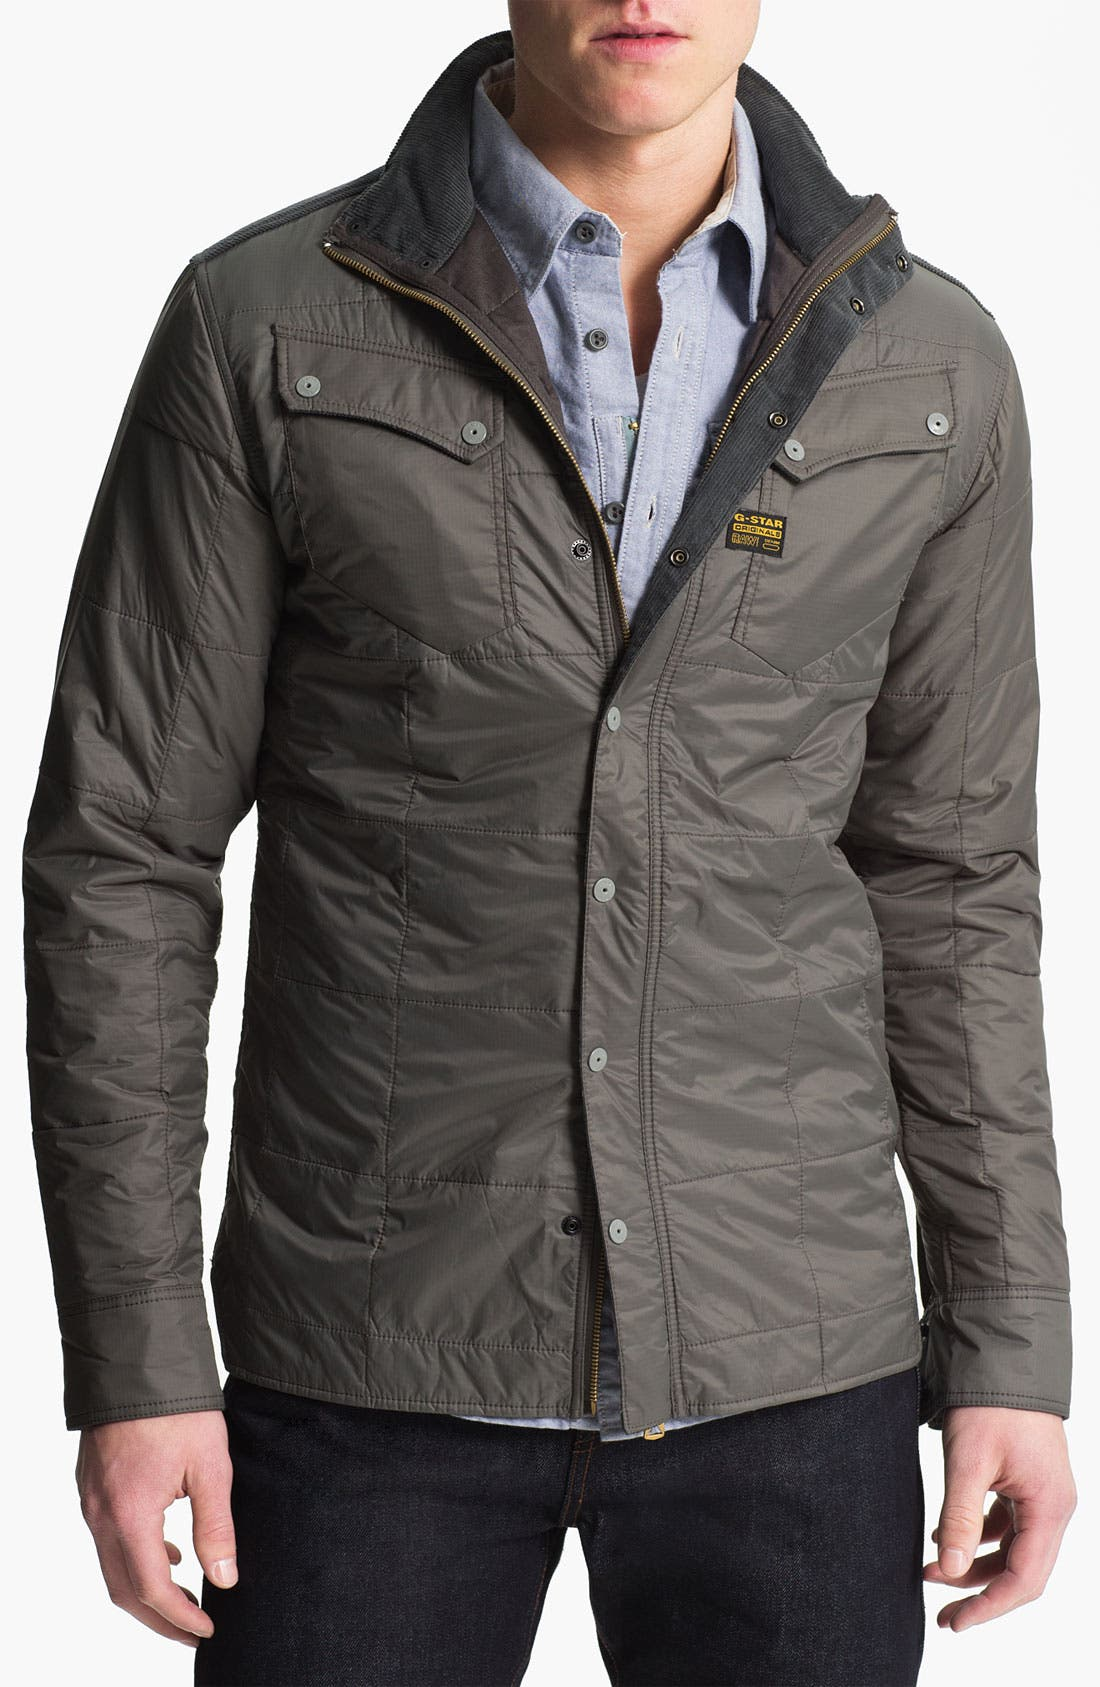 Alternate Image 1 Selected - G-Star Raw 'Ski' Quilted Jacket